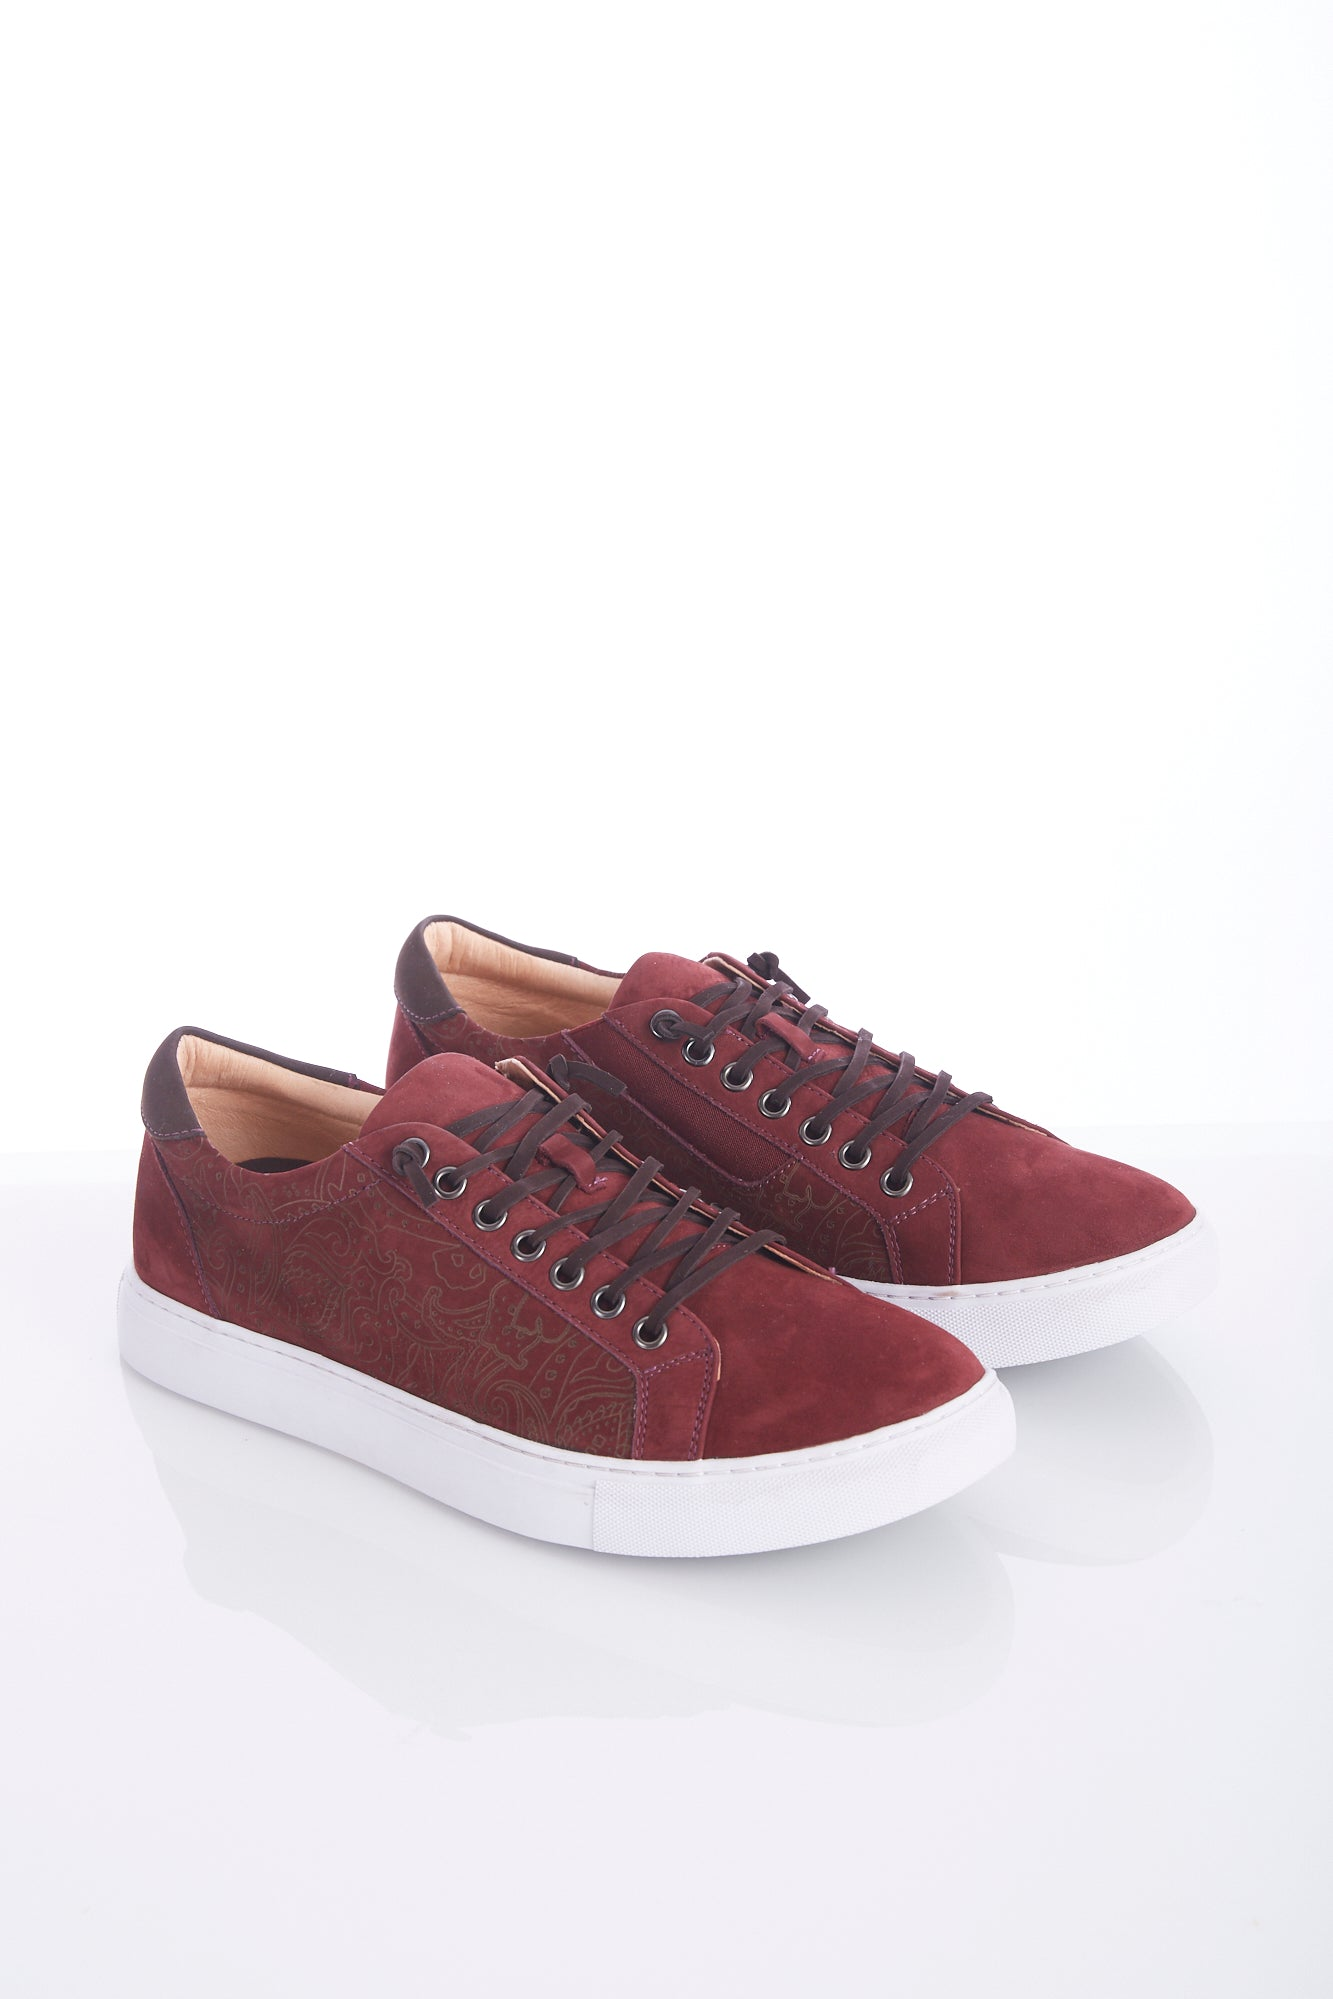 Robert Graham Red 'Lima' Sneaker